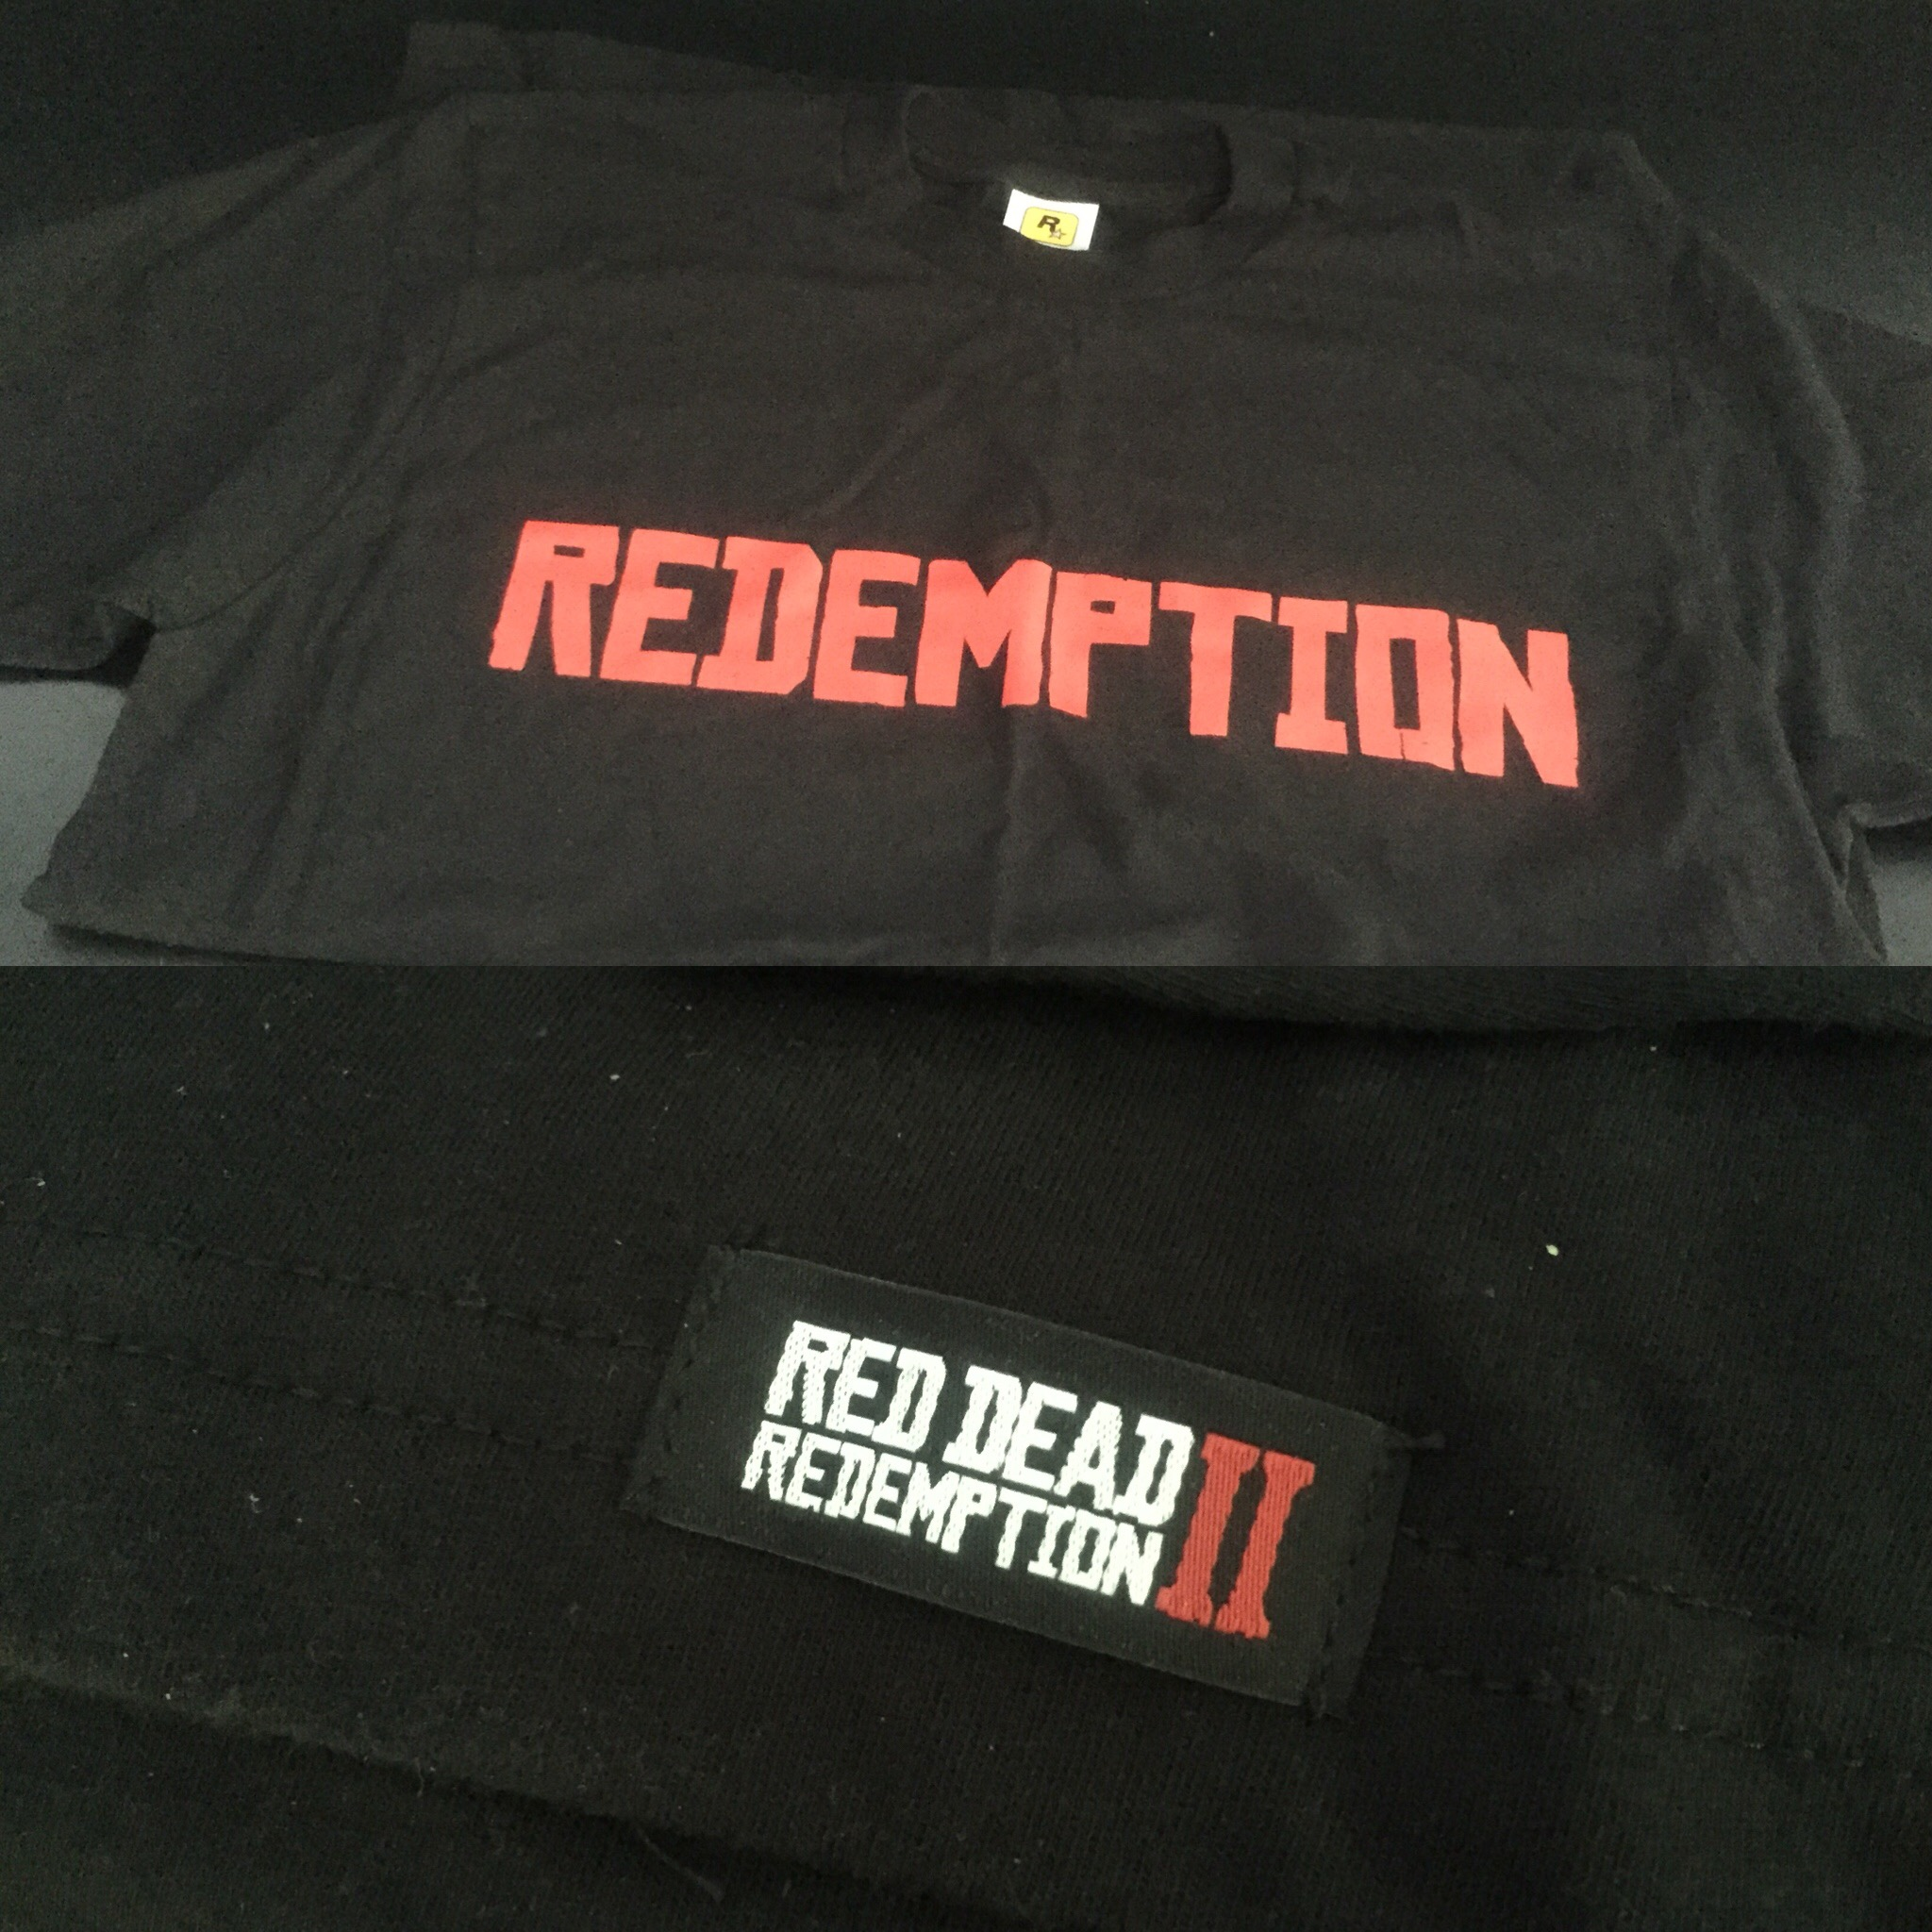 Colis Rockstar Games - Red Dead Redemption II - t-shirt